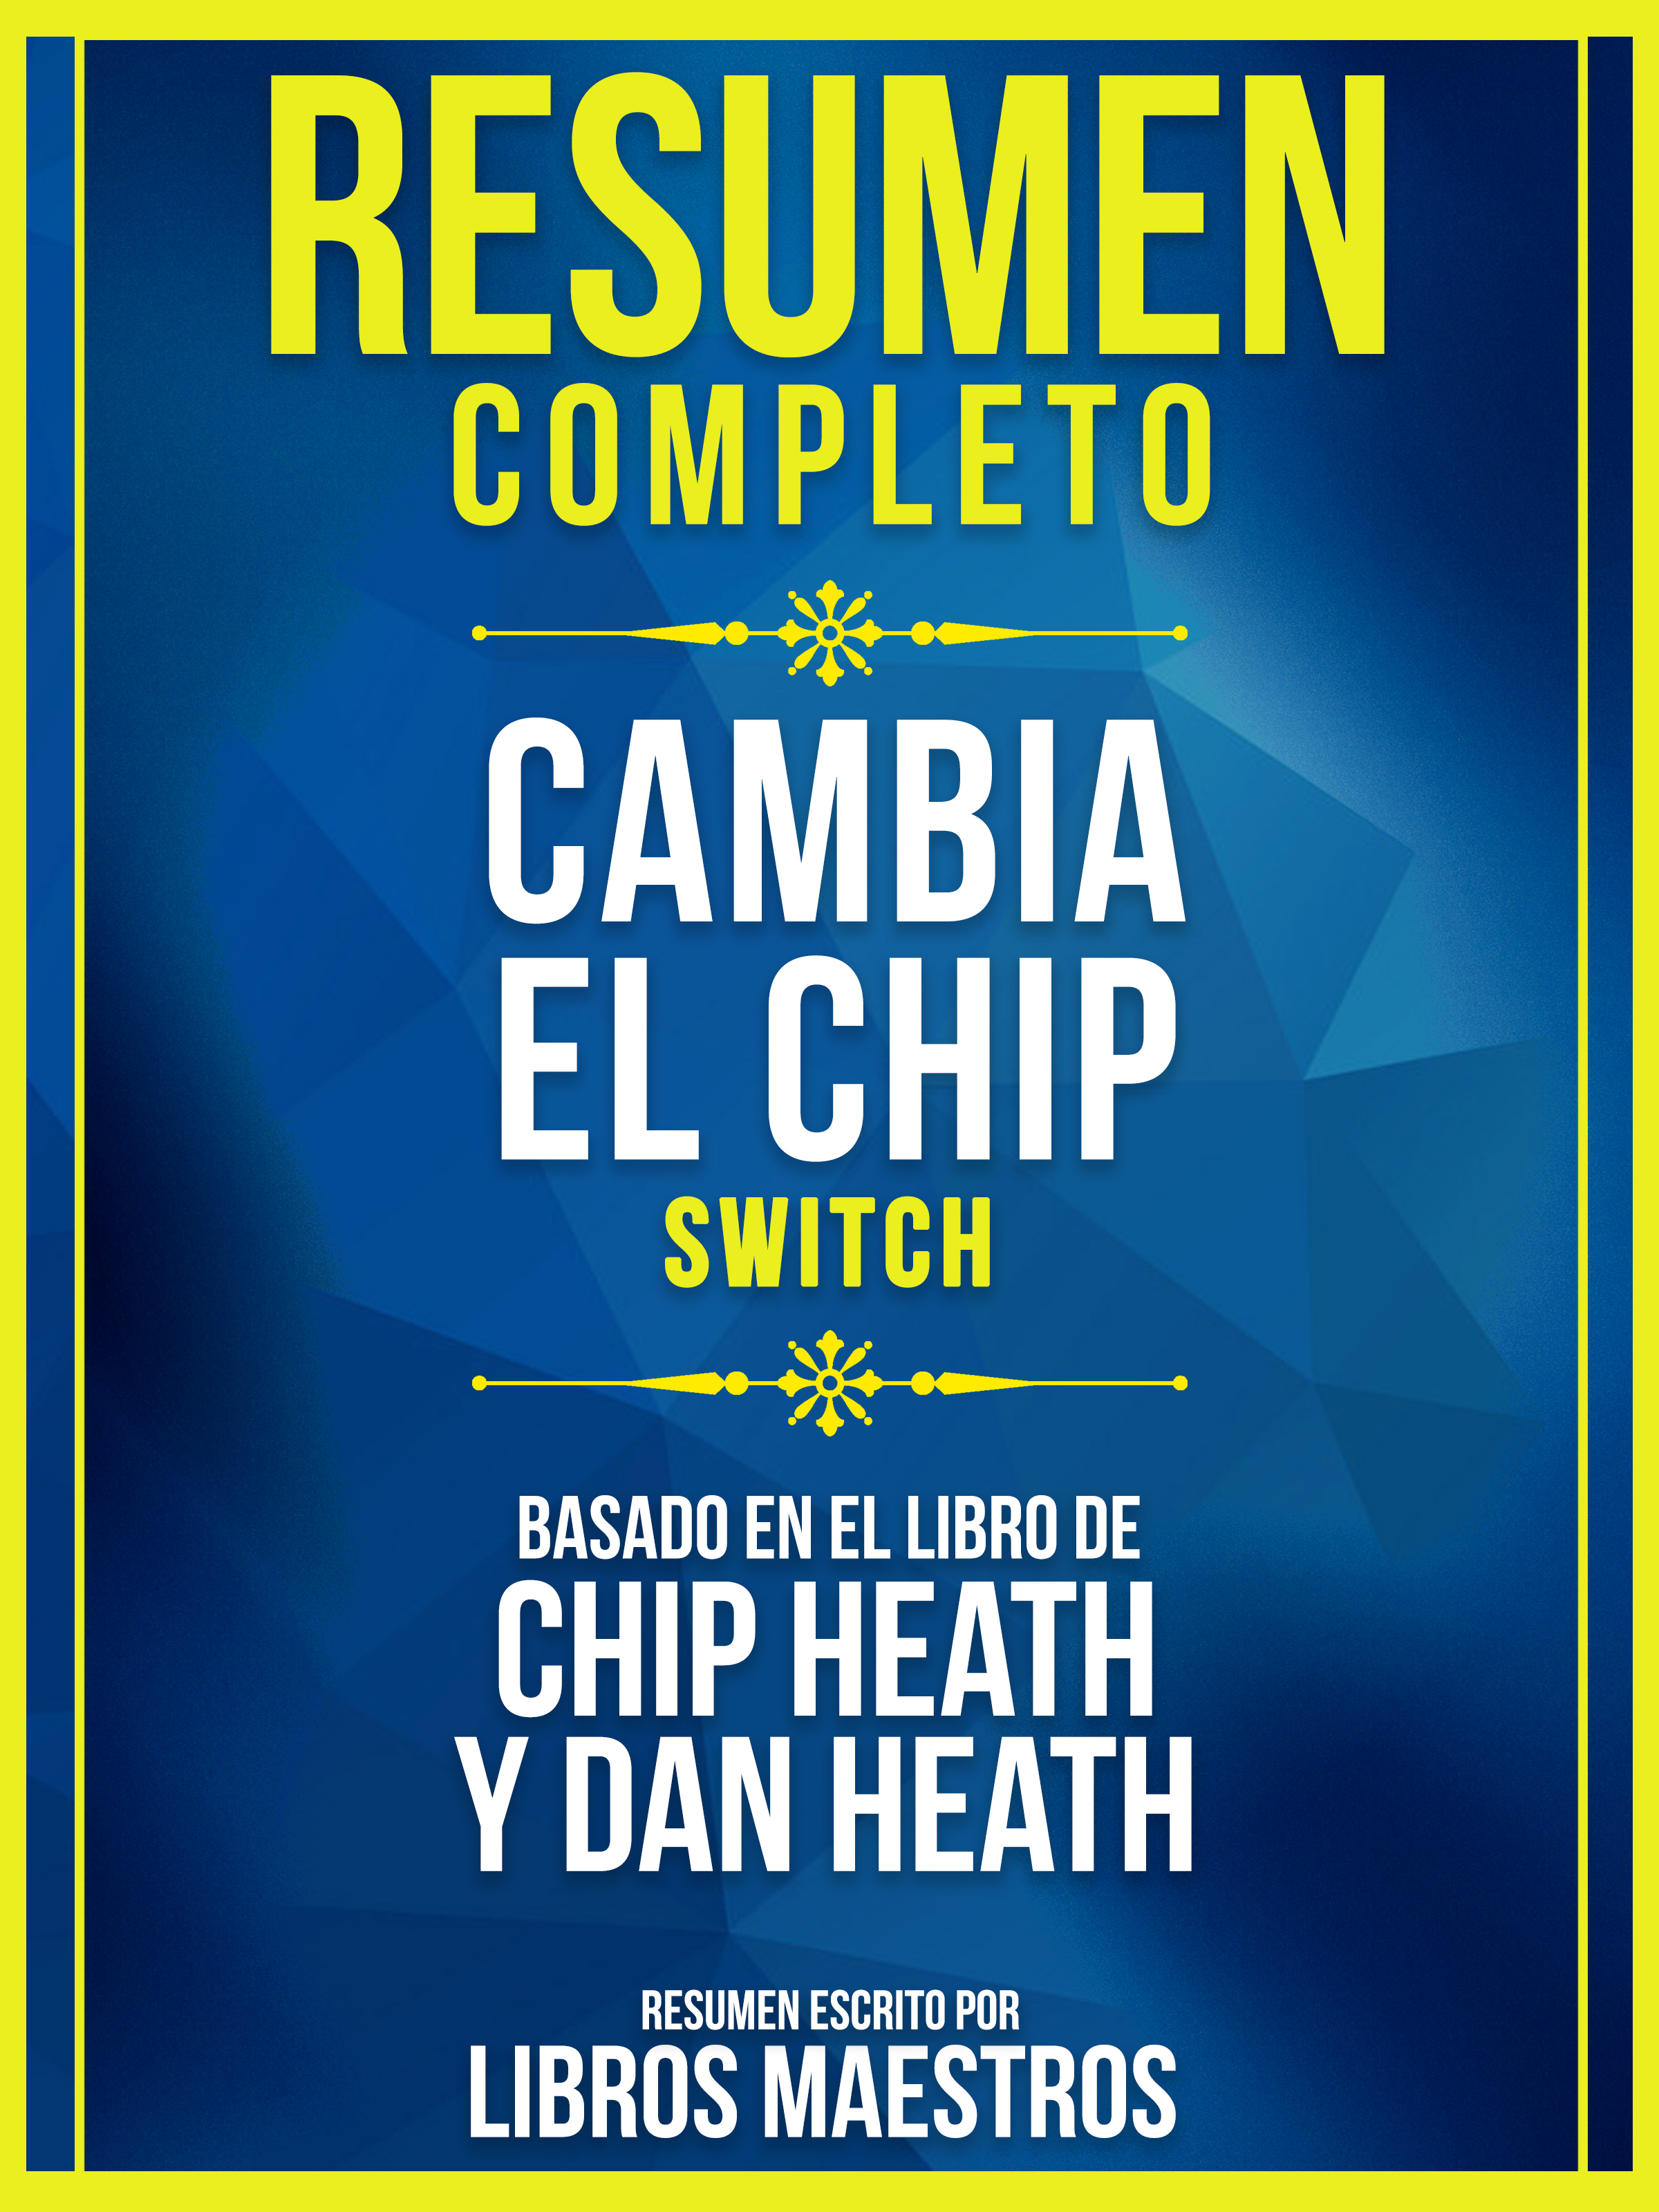 Libros Maestros Resumen Completo: Cambia El Chip (Switch) - Basado En El Libro De Chip Heath Y Dan Heath